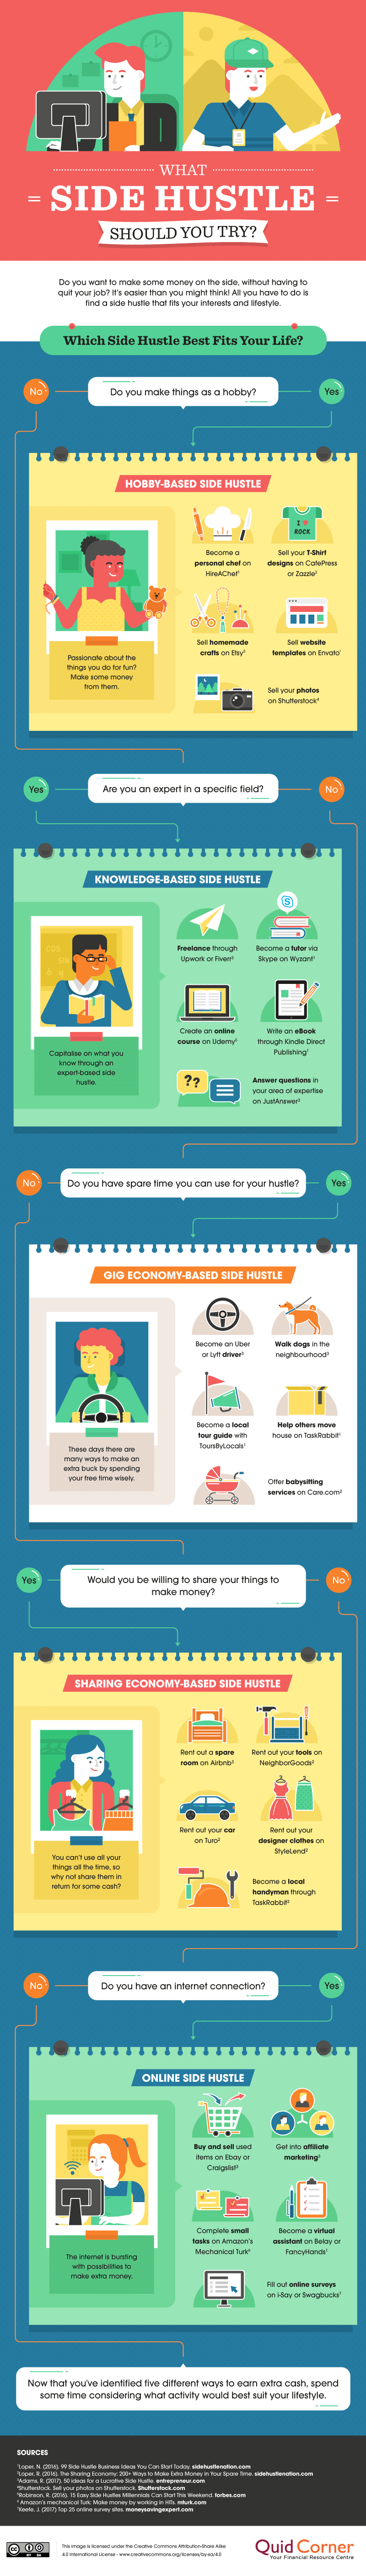 Which Side Hustle Should You Try? (Infographic)